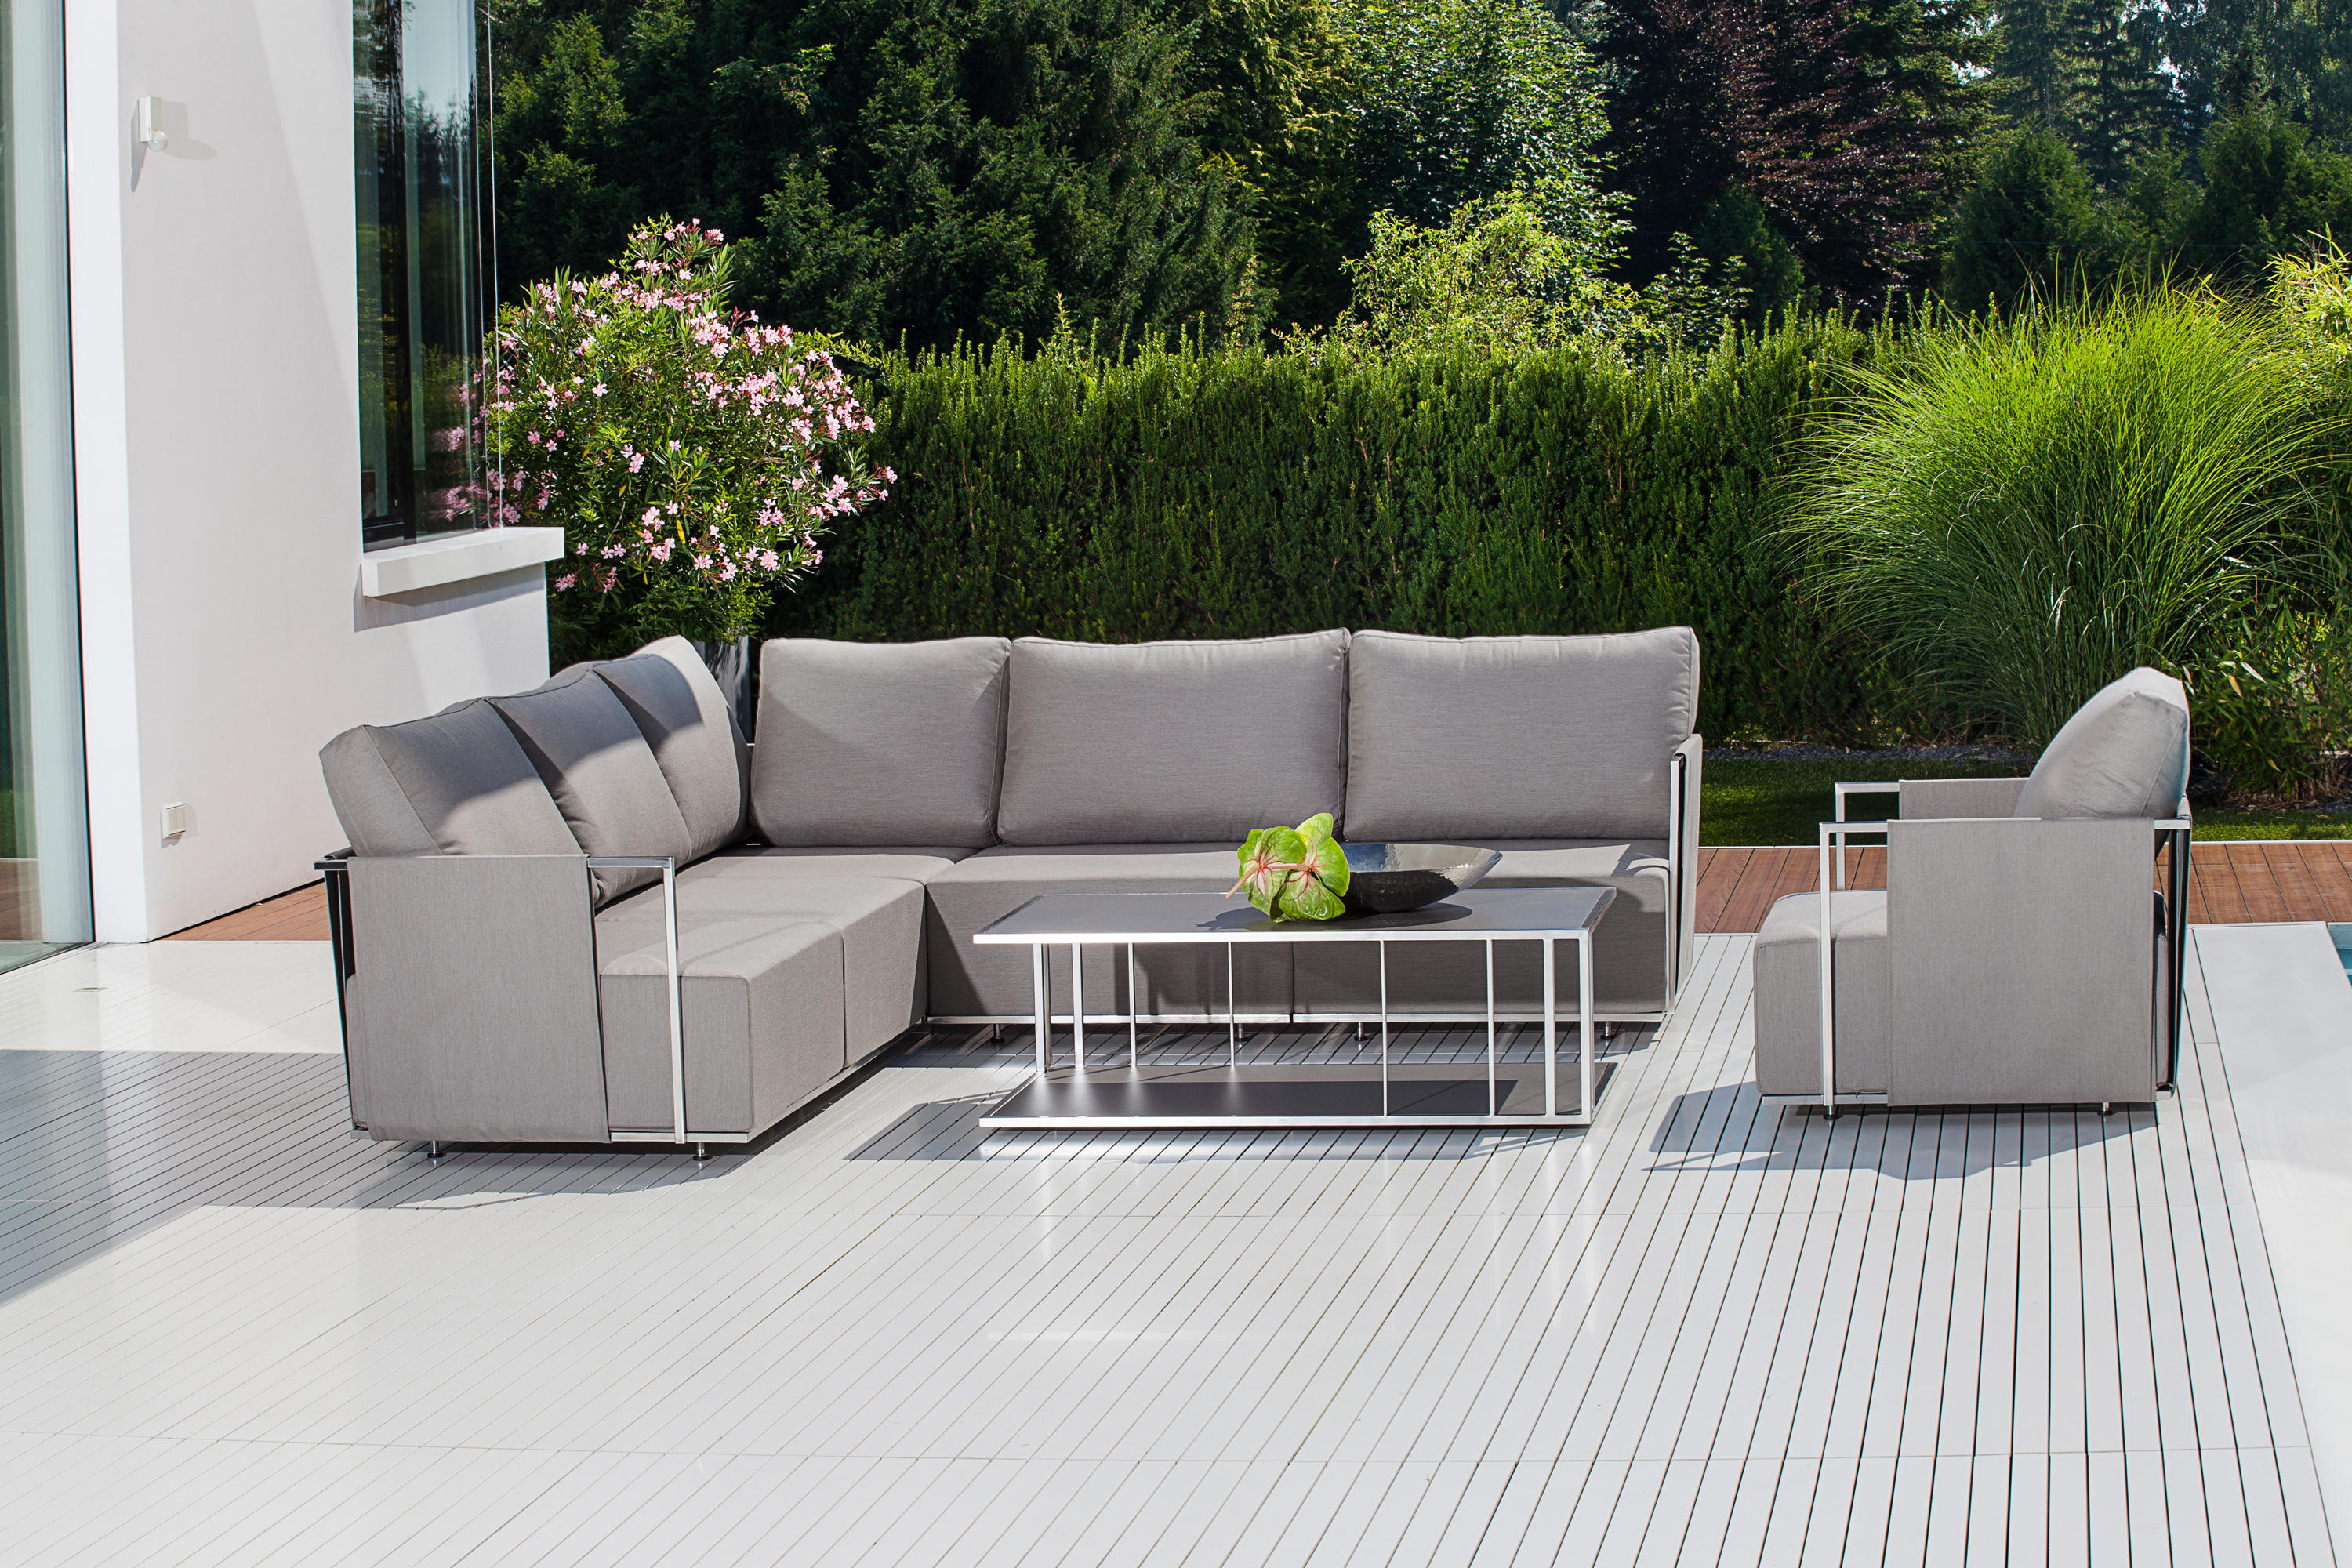 SUITE CANTILEVER CHAIR - Garden chairs from Fischer Möbel | Architonic